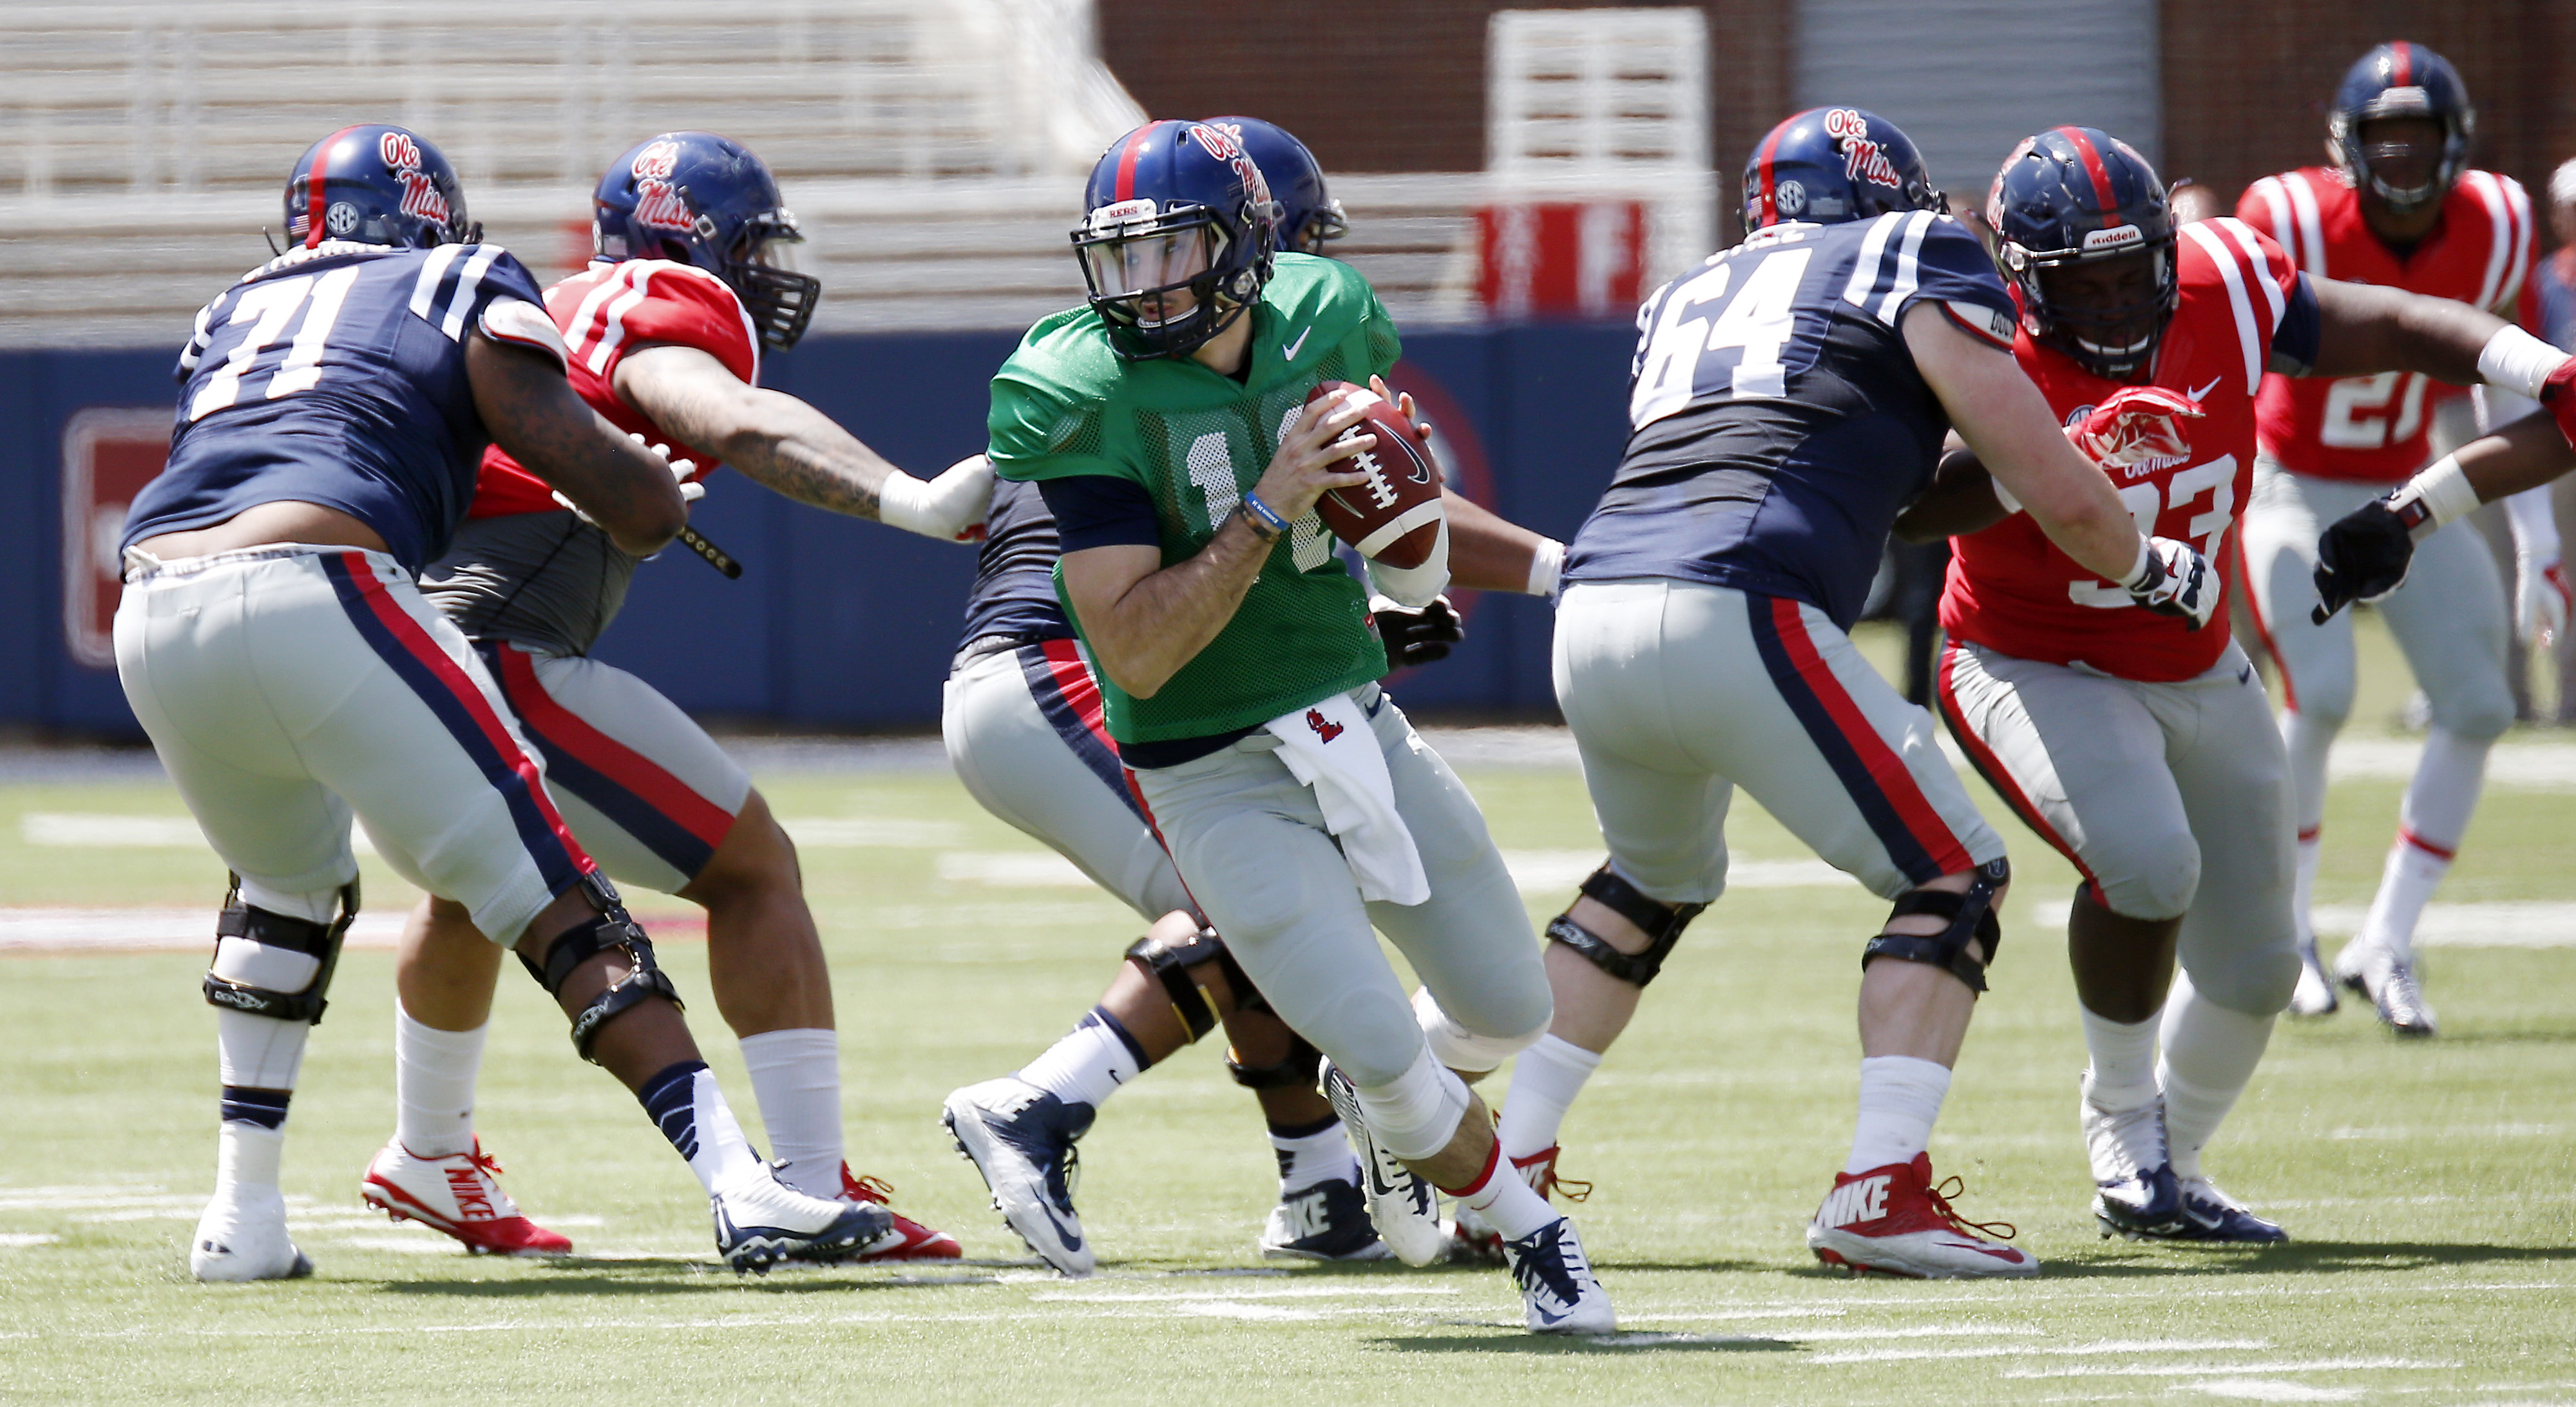 Mississippi Blue quarterback Chad Kelly (10) rolls out of the pocket as he tries to find an open receiver while Red defenders pursue during their spring college football game, Saturday, April 11, 2015, in Oxford, Miss. (AP Photo/Rogelio V. Solis)